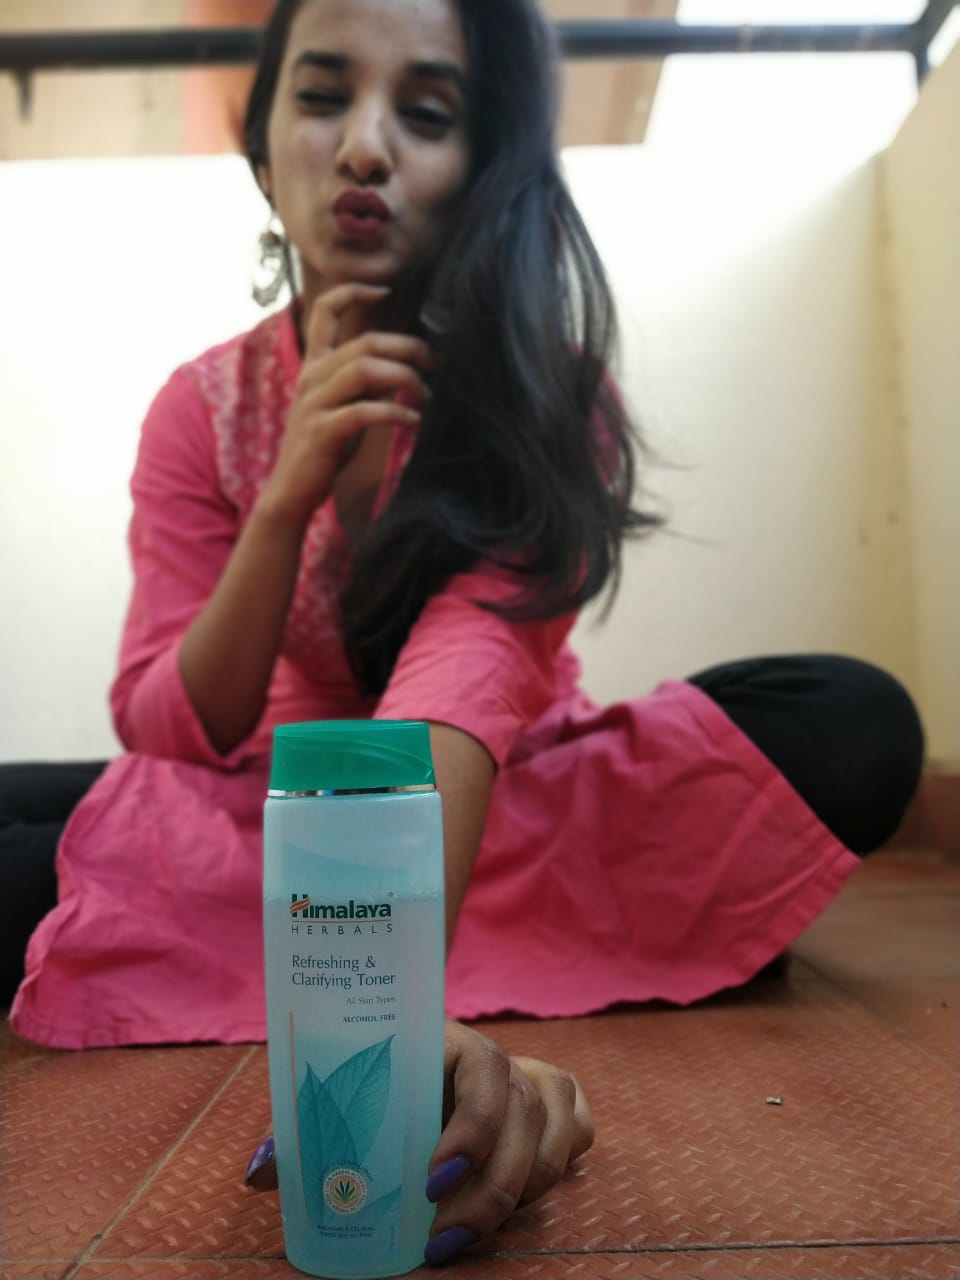 Himalaya Herbals Refreshing And Clarifying Toner-Himalaya refreshing and clarifying toner-By nidhiprakash12